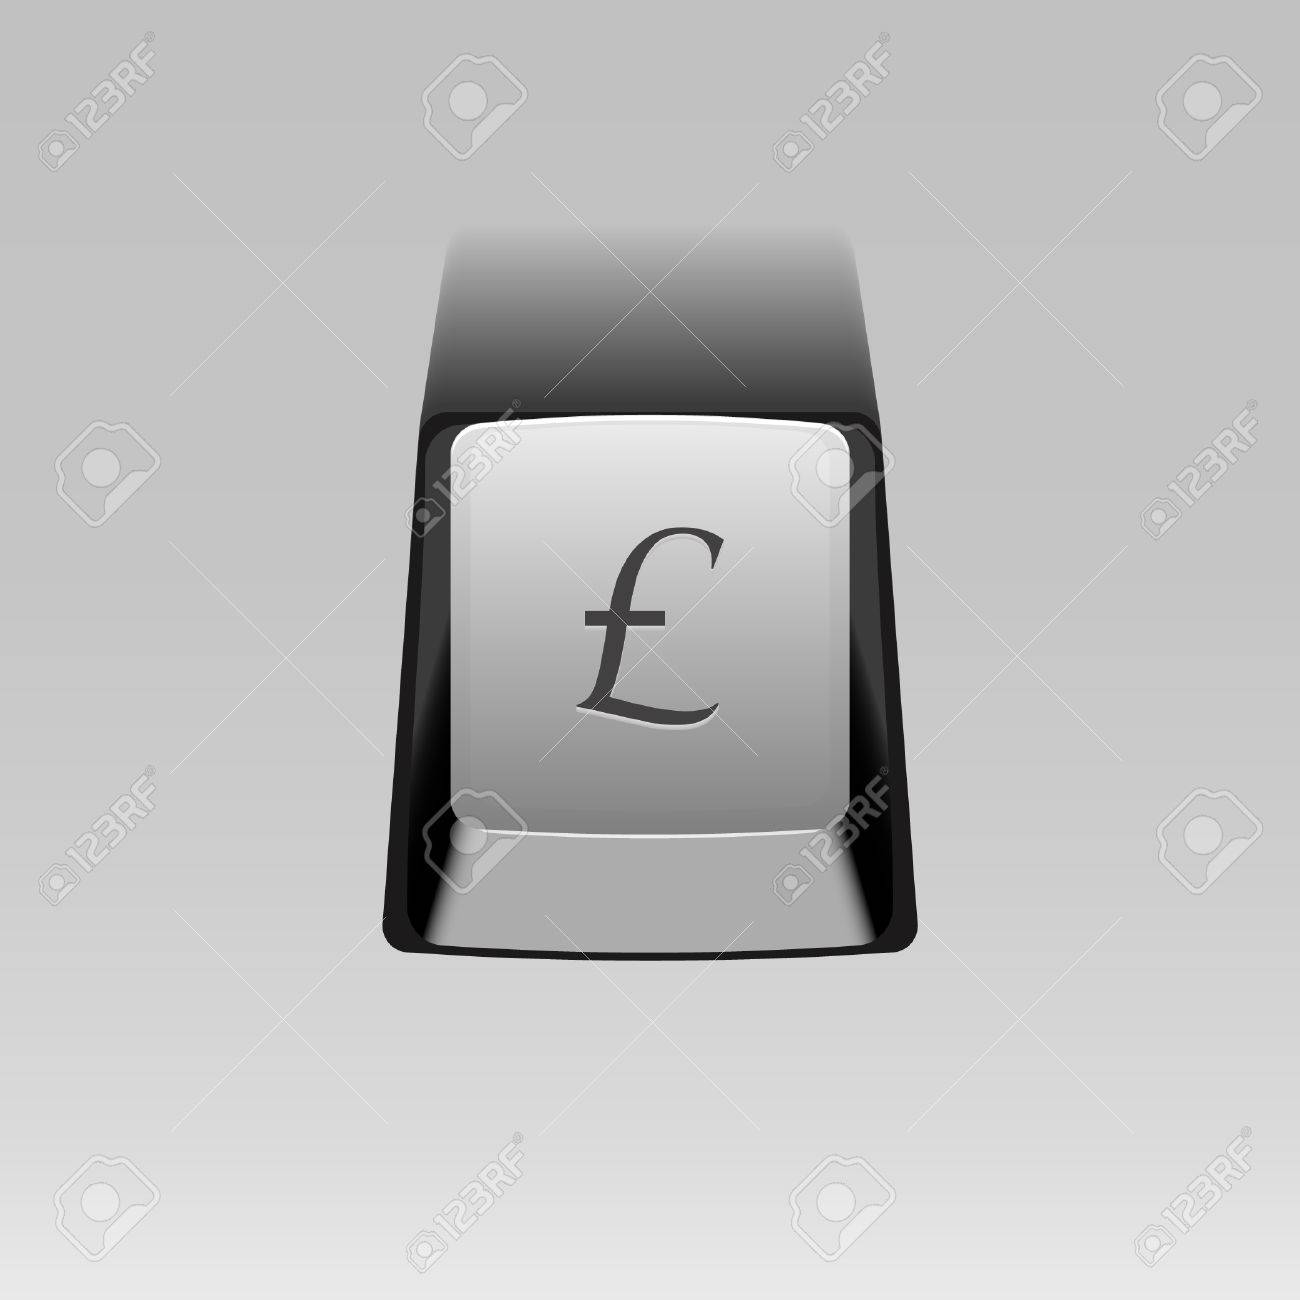 Keyboard button with pound symbol royalty free cliparts vectors keyboard button with pound symbol stock vector 34501383 biocorpaavc Choice Image